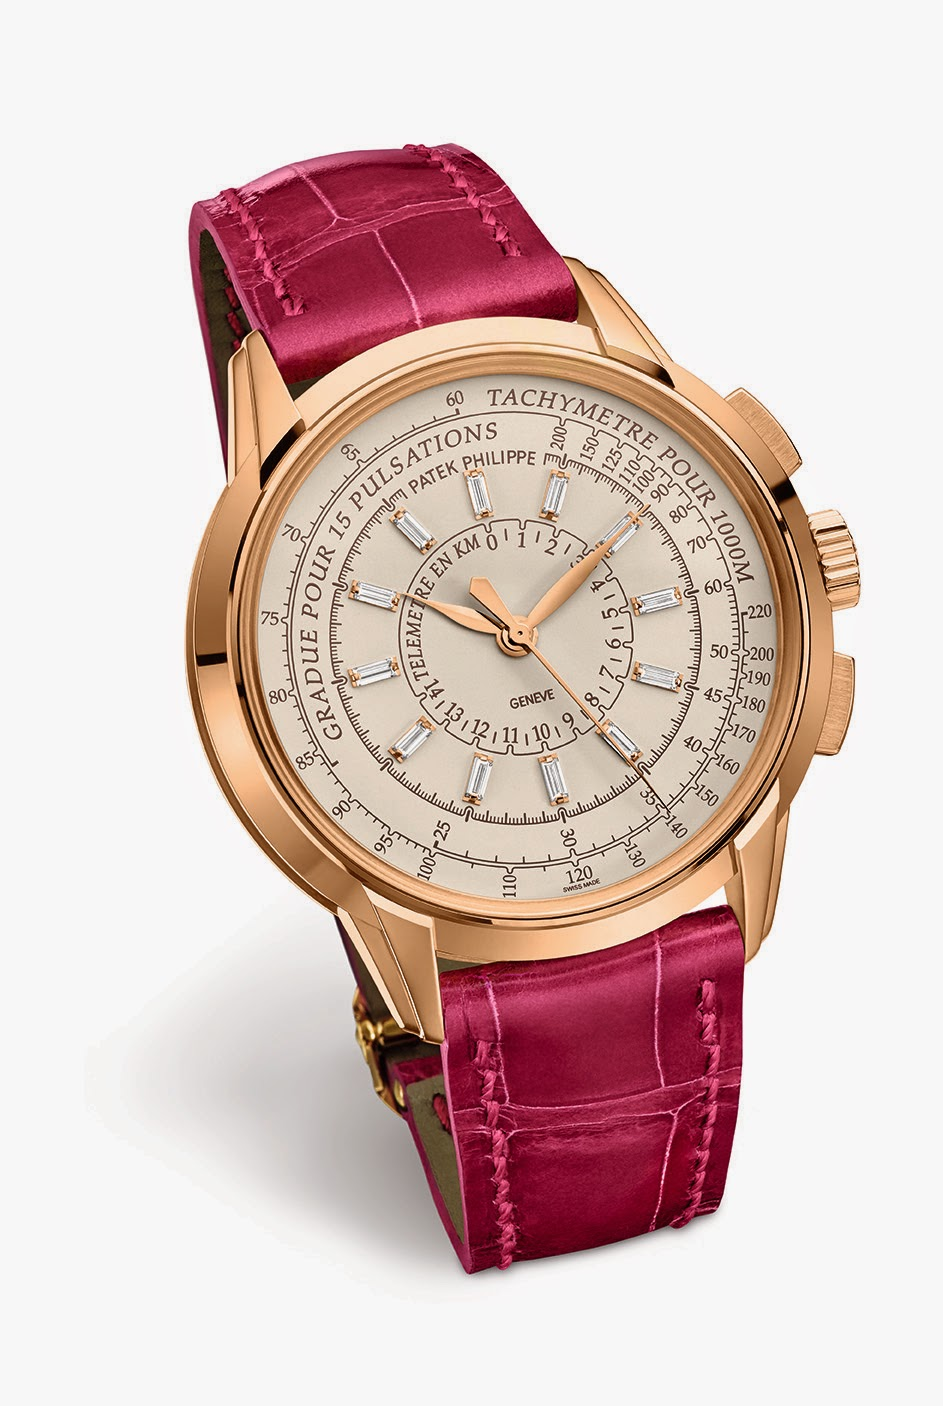 Patek philippe limited edition ladies multi scale chronograph ref 4675r sense of luxury for Patek philippe women